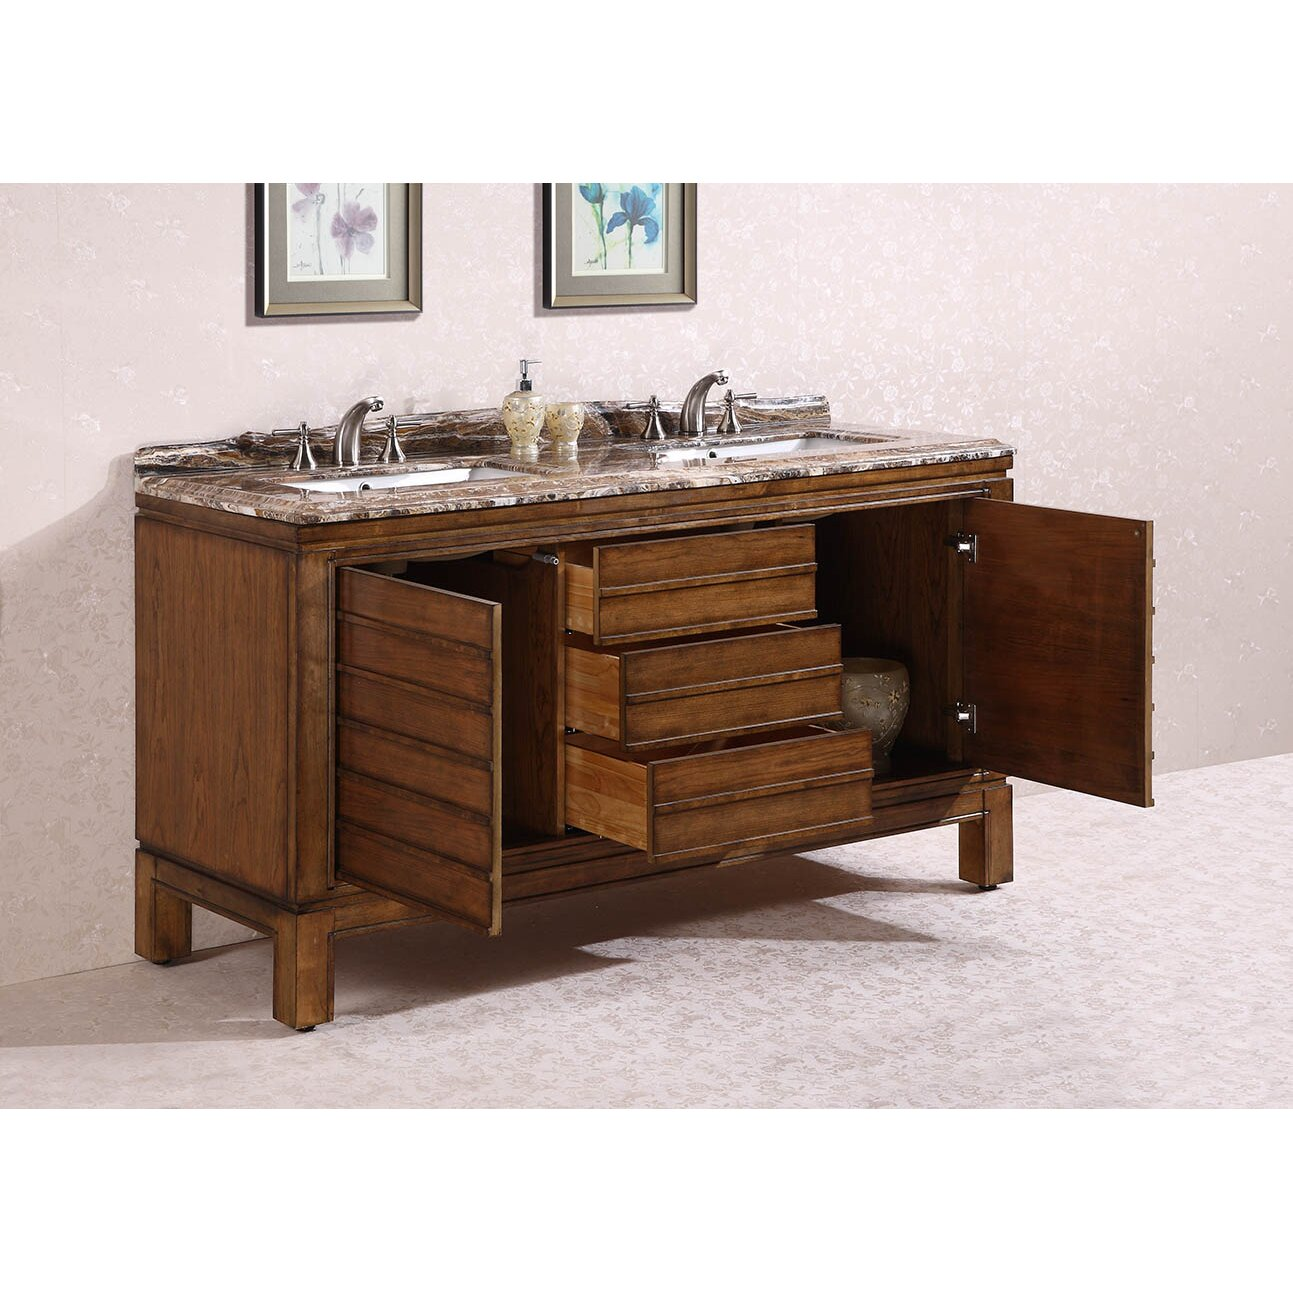 Legion furniture 68 double bathroom vanity set wayfair for Legion furniture 30 inch bathroom vanity